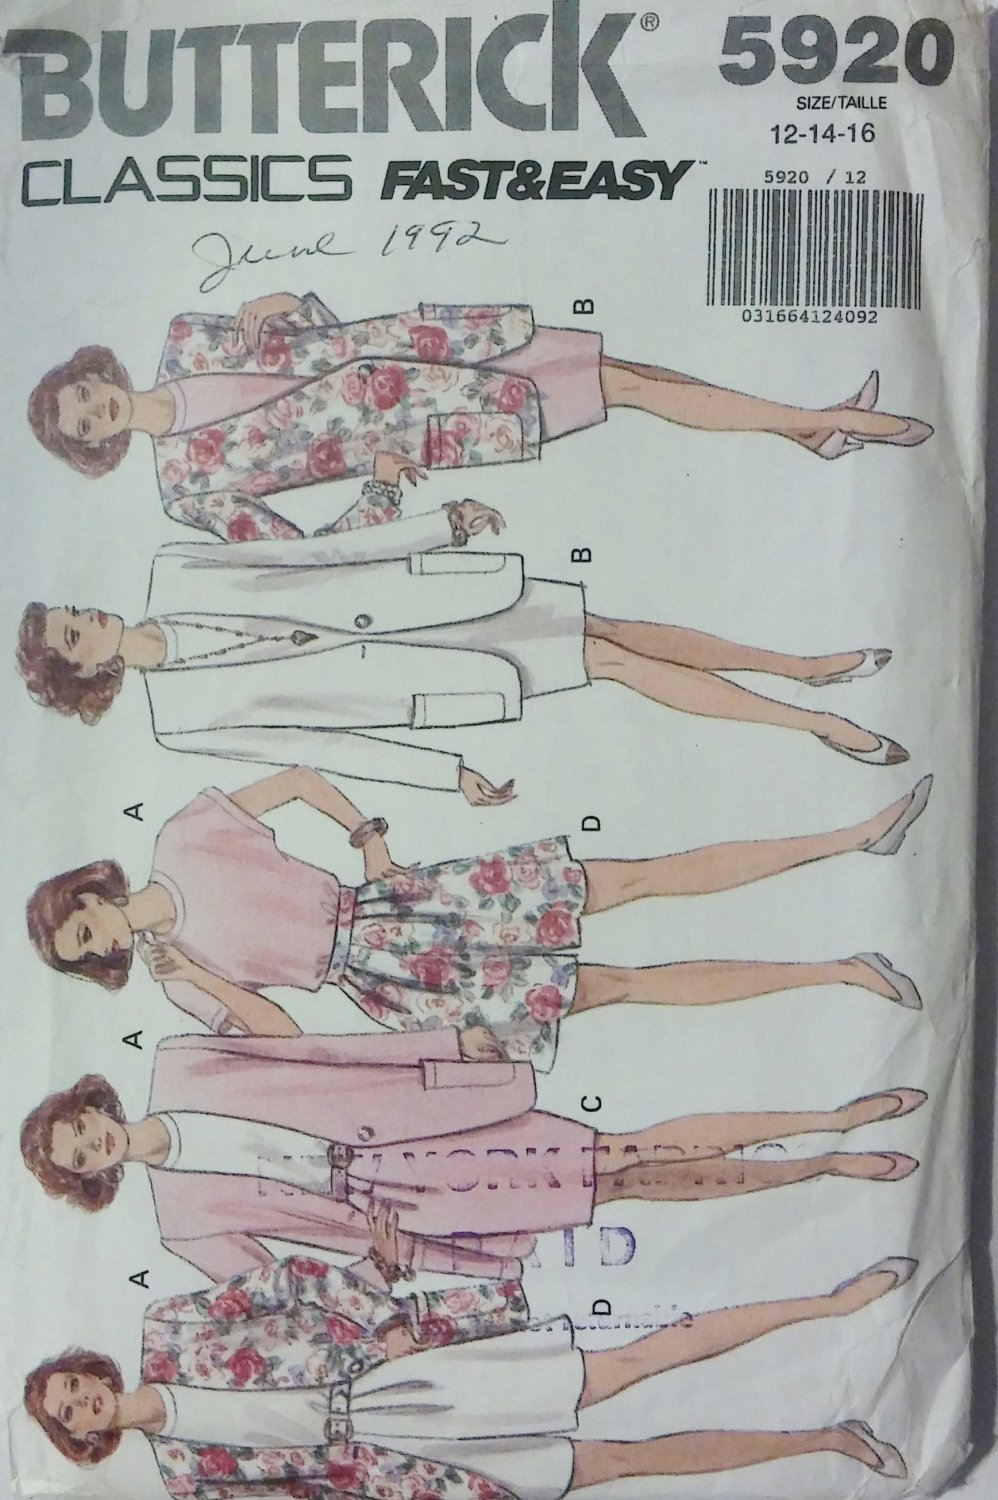 Misses/Misses Petite Jacket, Dress, Top, Skirt & Shorts; Sizes 12-16 Rated Very Easy